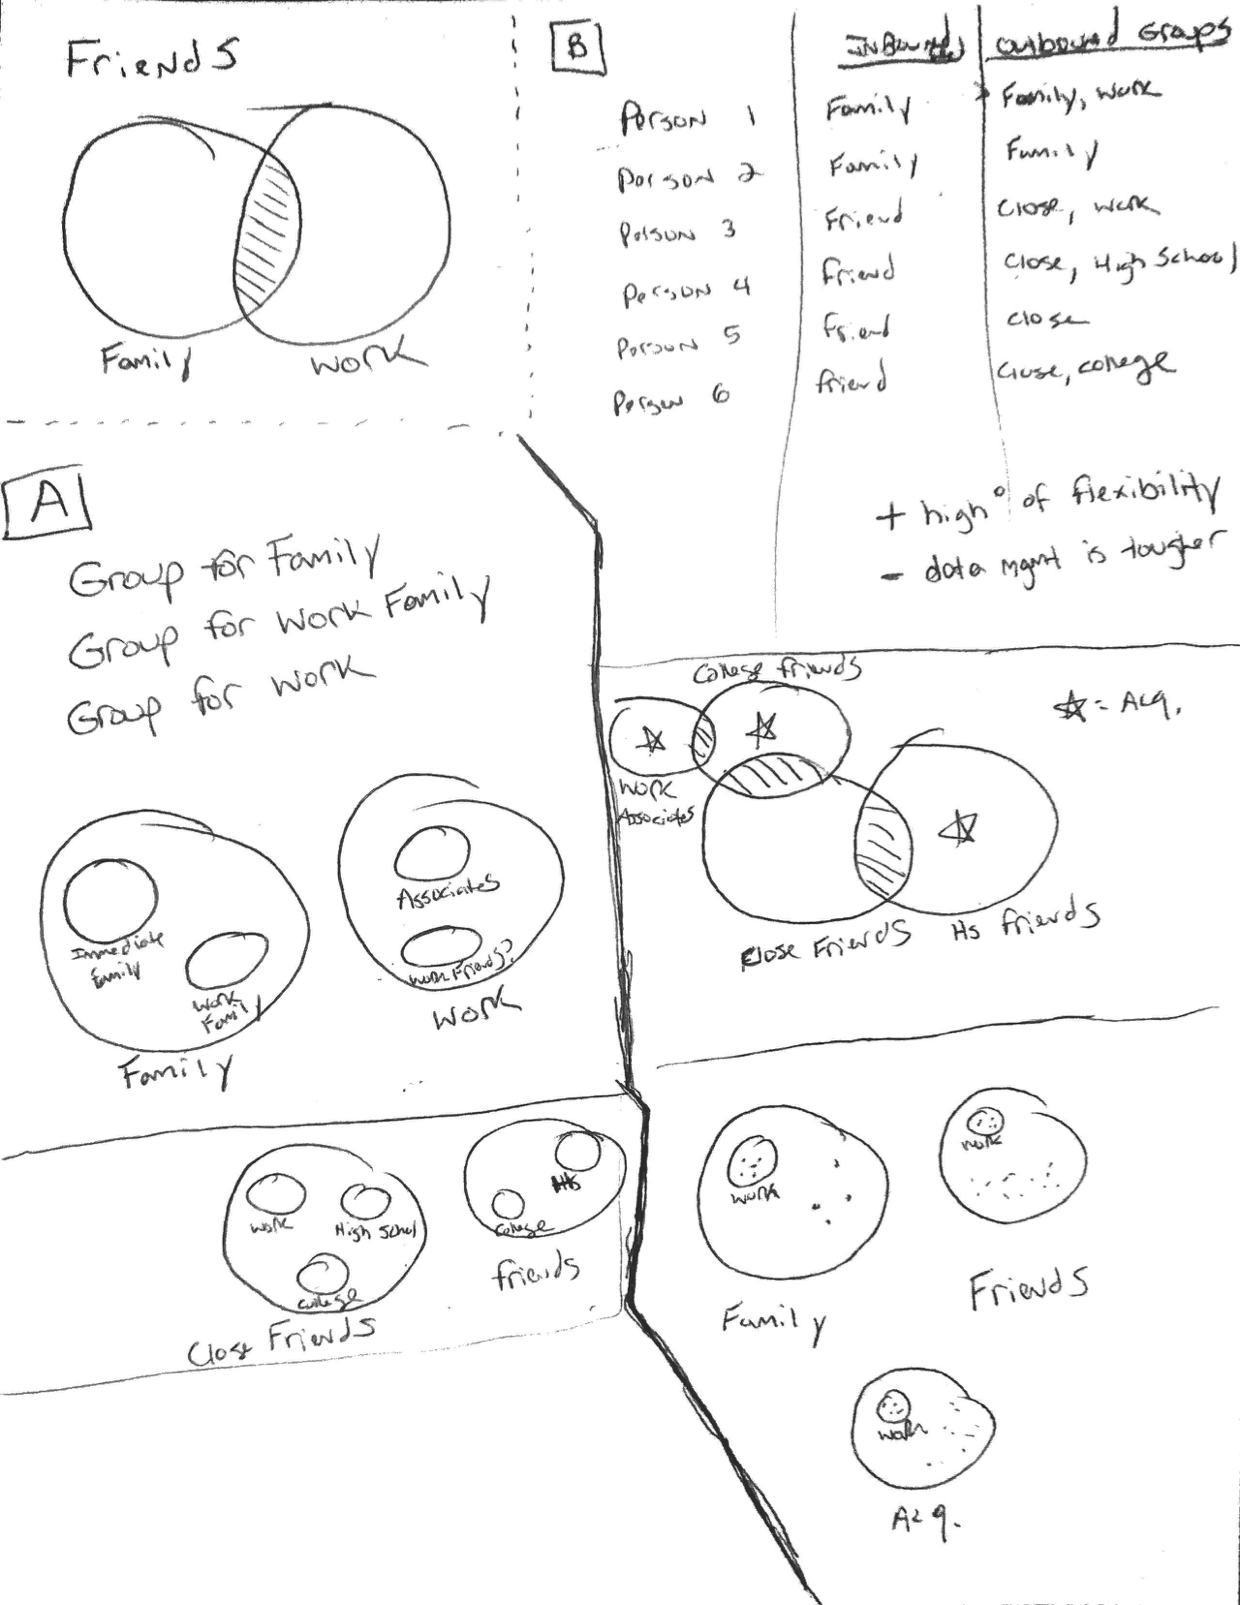 Group Page 1.png